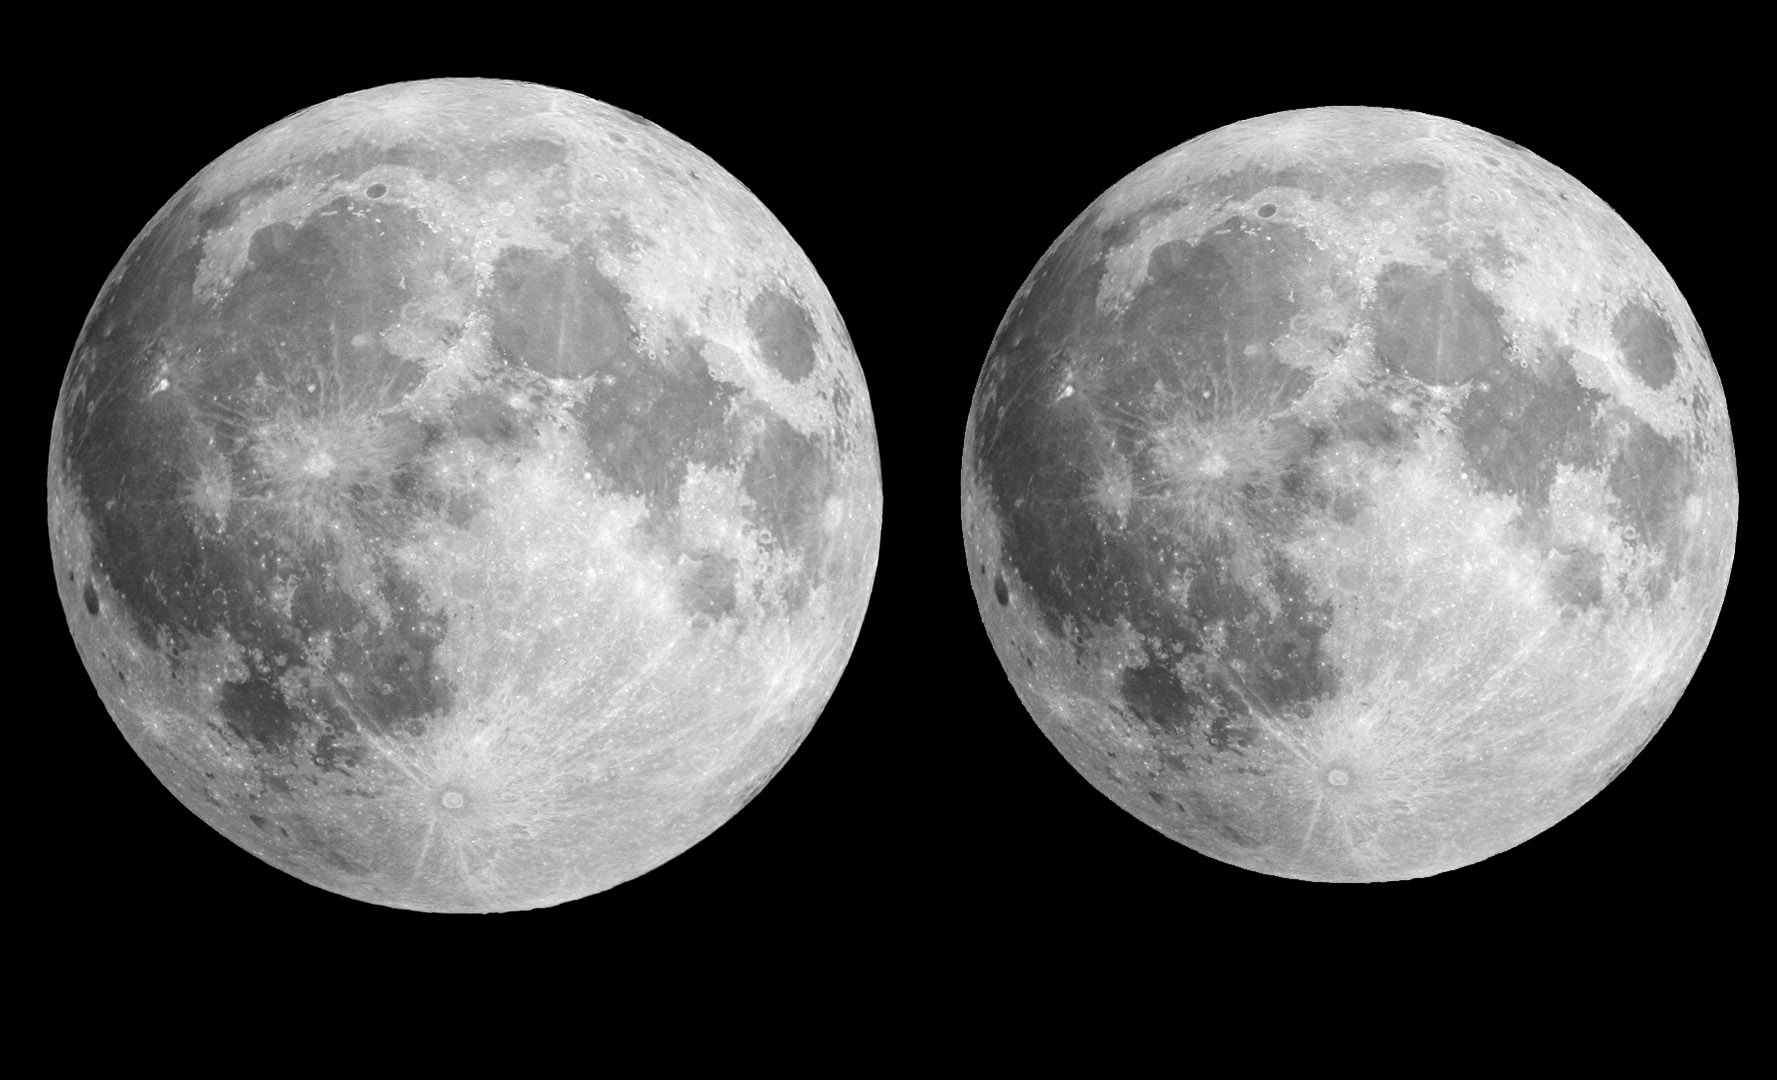 A true to life representation of the supermoon size vs the average full moon